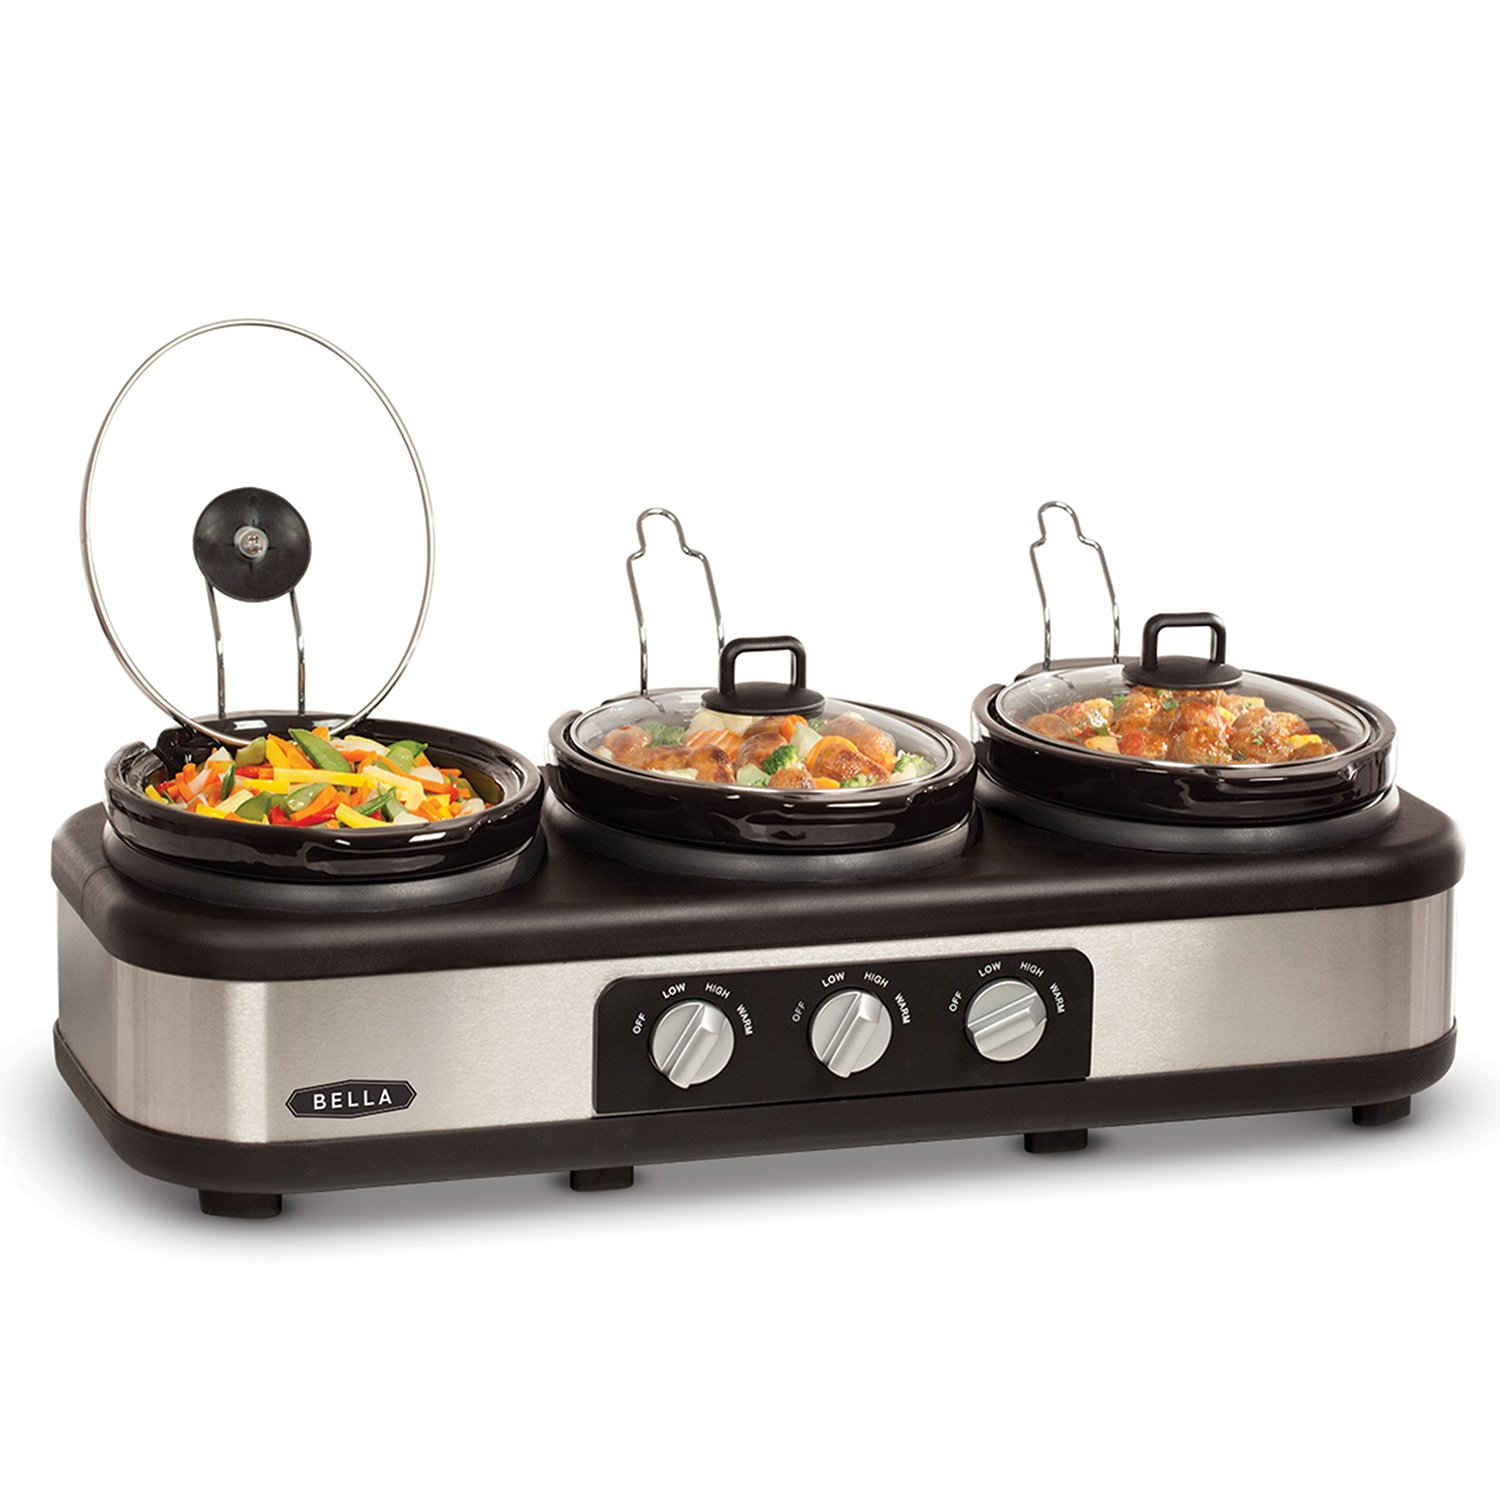 Amazon.com: BELLA Triple Slow Cooker and Buffet Server, 3 x1.5 QT Manual  Stainless Steel: Buffet Server: Kitchen & Dining - Amazon.com: BELLA Triple Slow Cooker And Buffet Server, 3 X1.5 QT